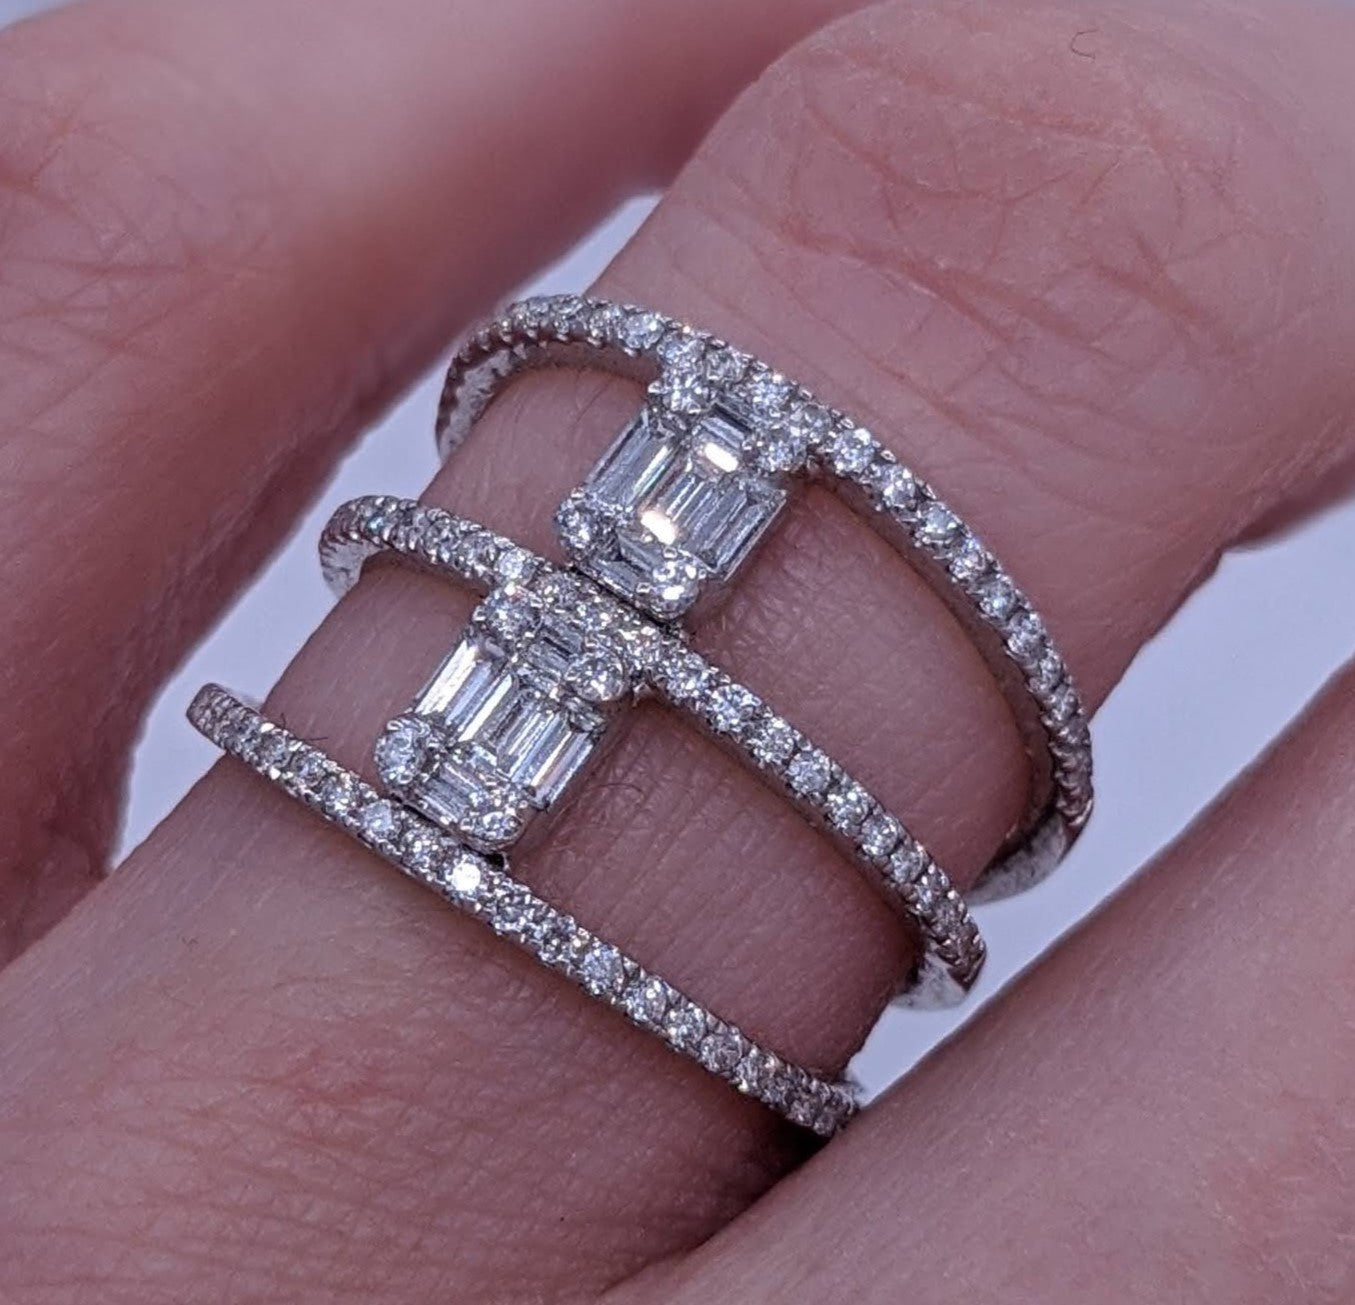 Triple Row Baguette Cut Diamond Ring 18kt White Gold